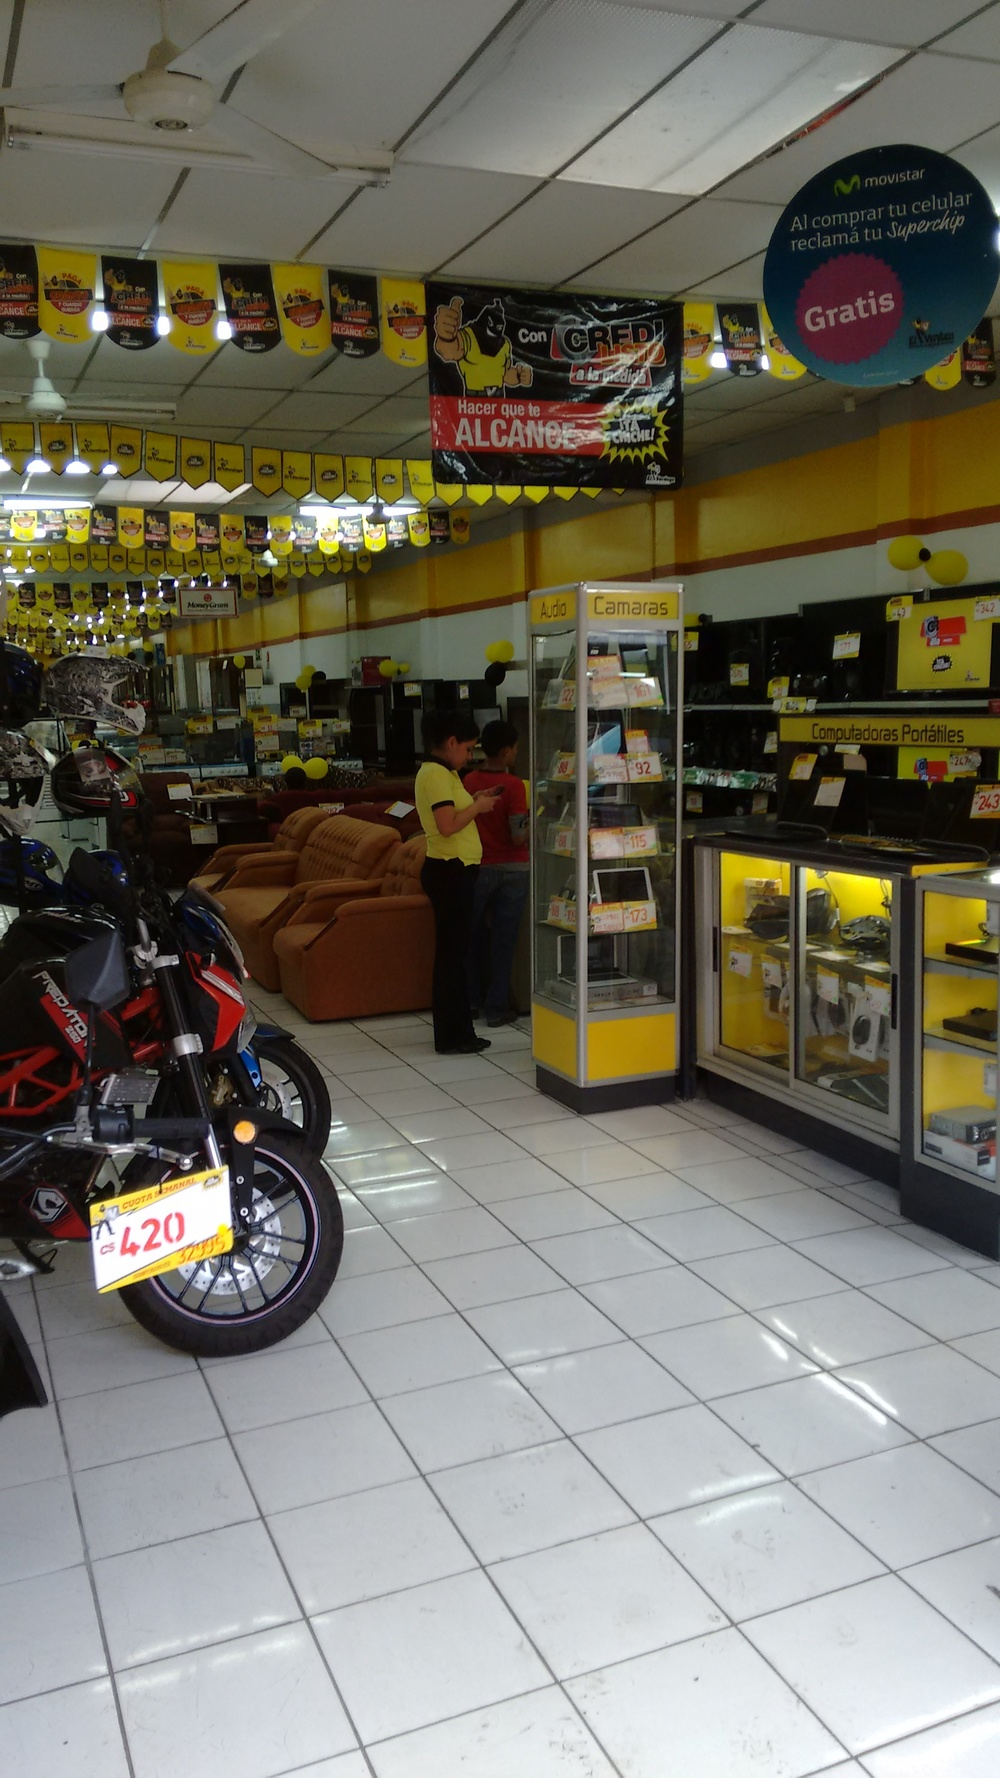 El Verdugo. You can buy everything in this store on credit. Note that the cost of the motorcycle is not C$420 (about $15)-- that's the weekly installment payment.